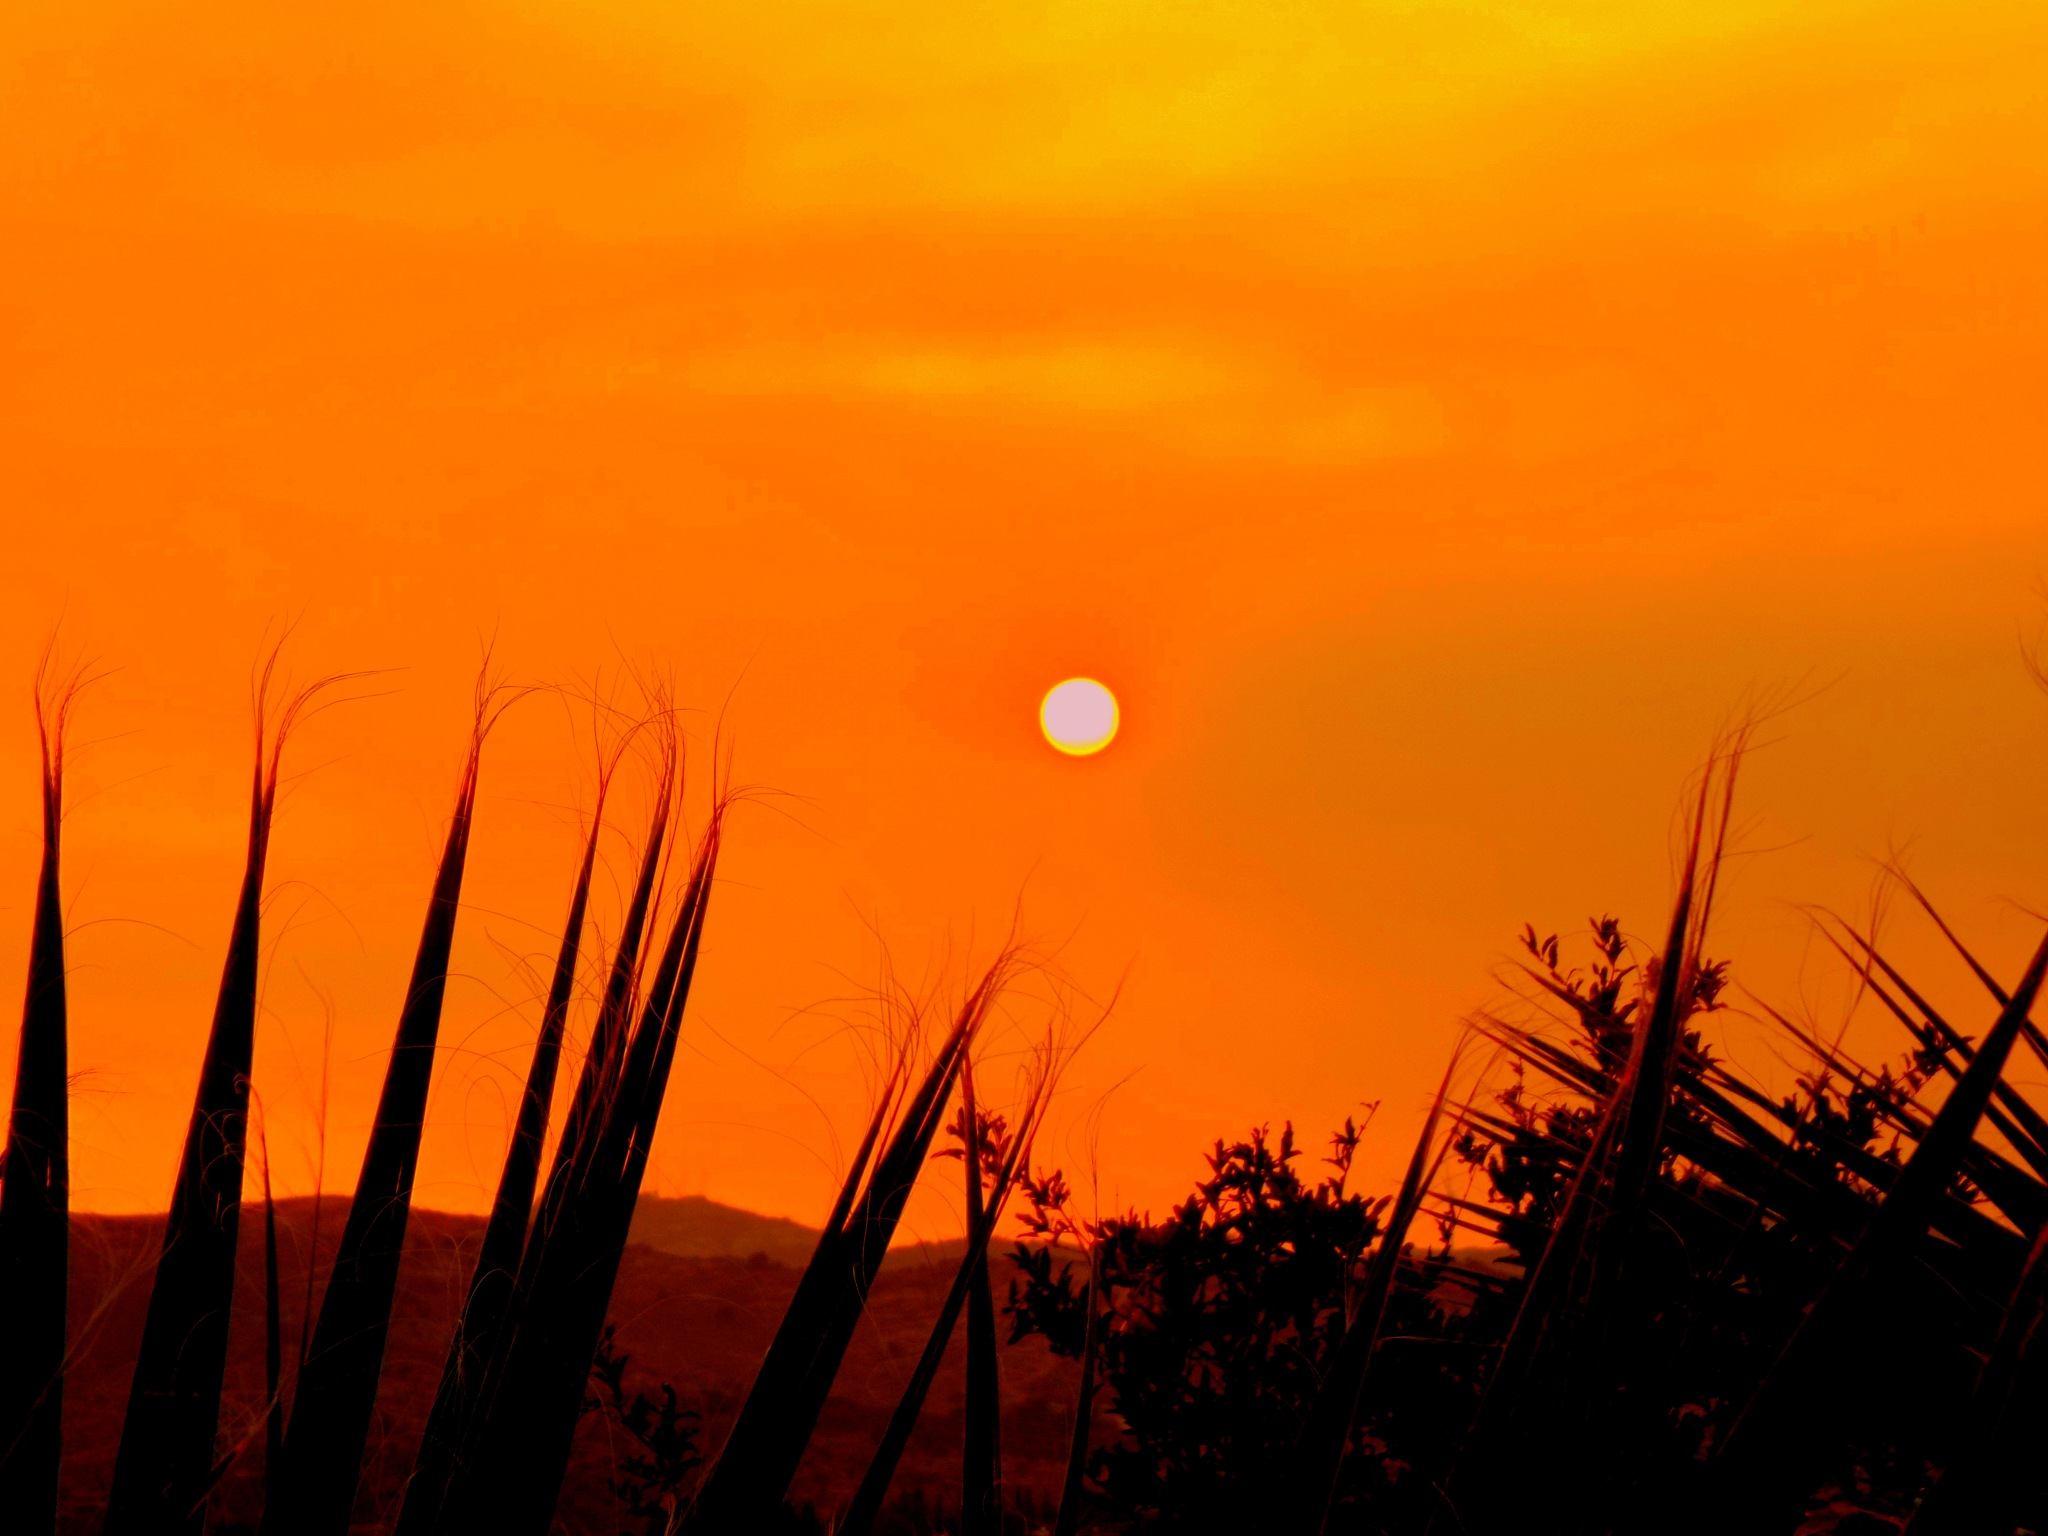 CACTUS LEAVES  ARE ALSO ATTRACTED BY THE SETTING SUN LAST NIGHT by Akin Saner